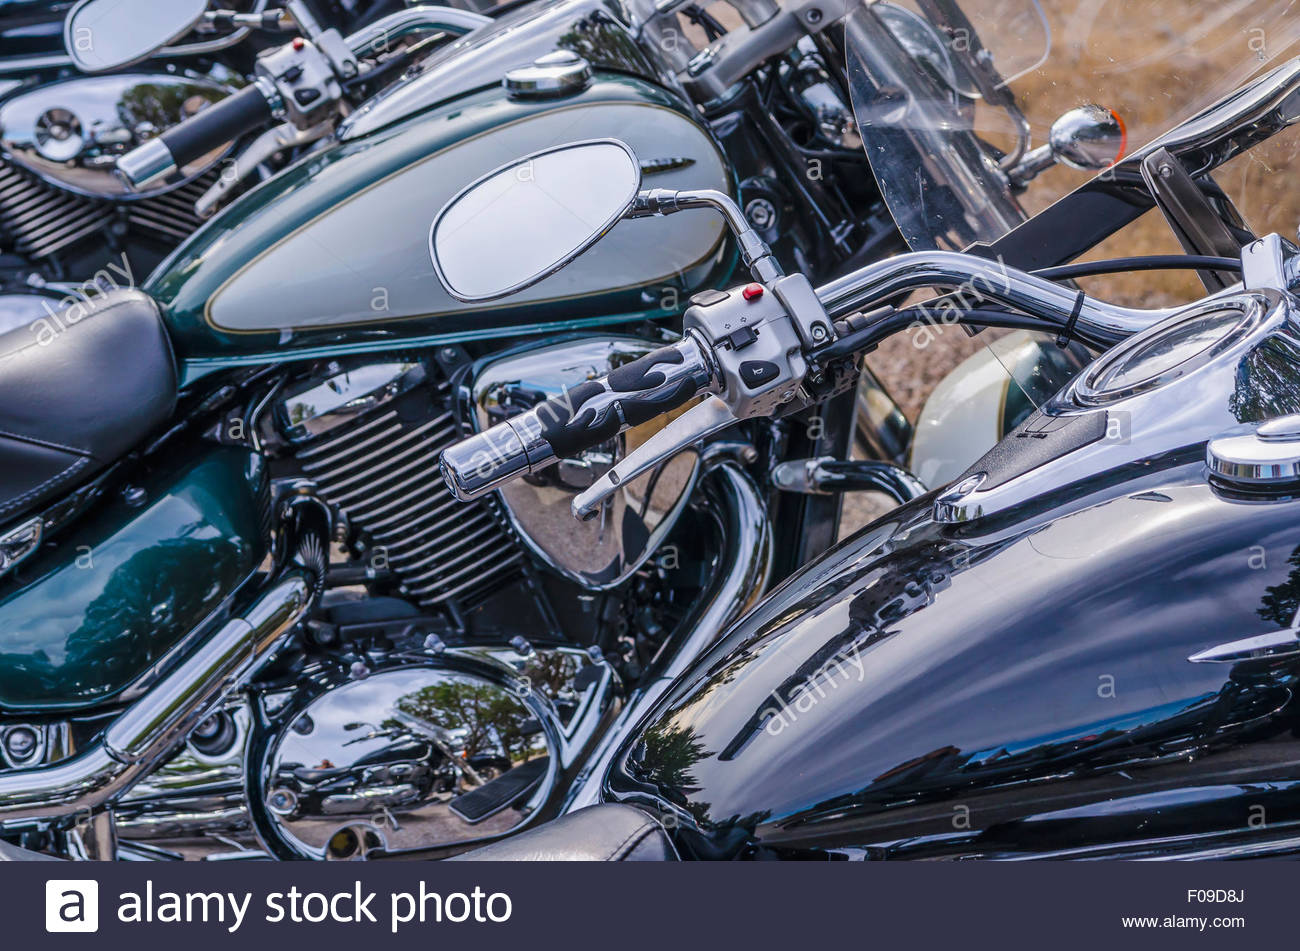 Detail of the rear mirror in a parked motorbike - Stock Image